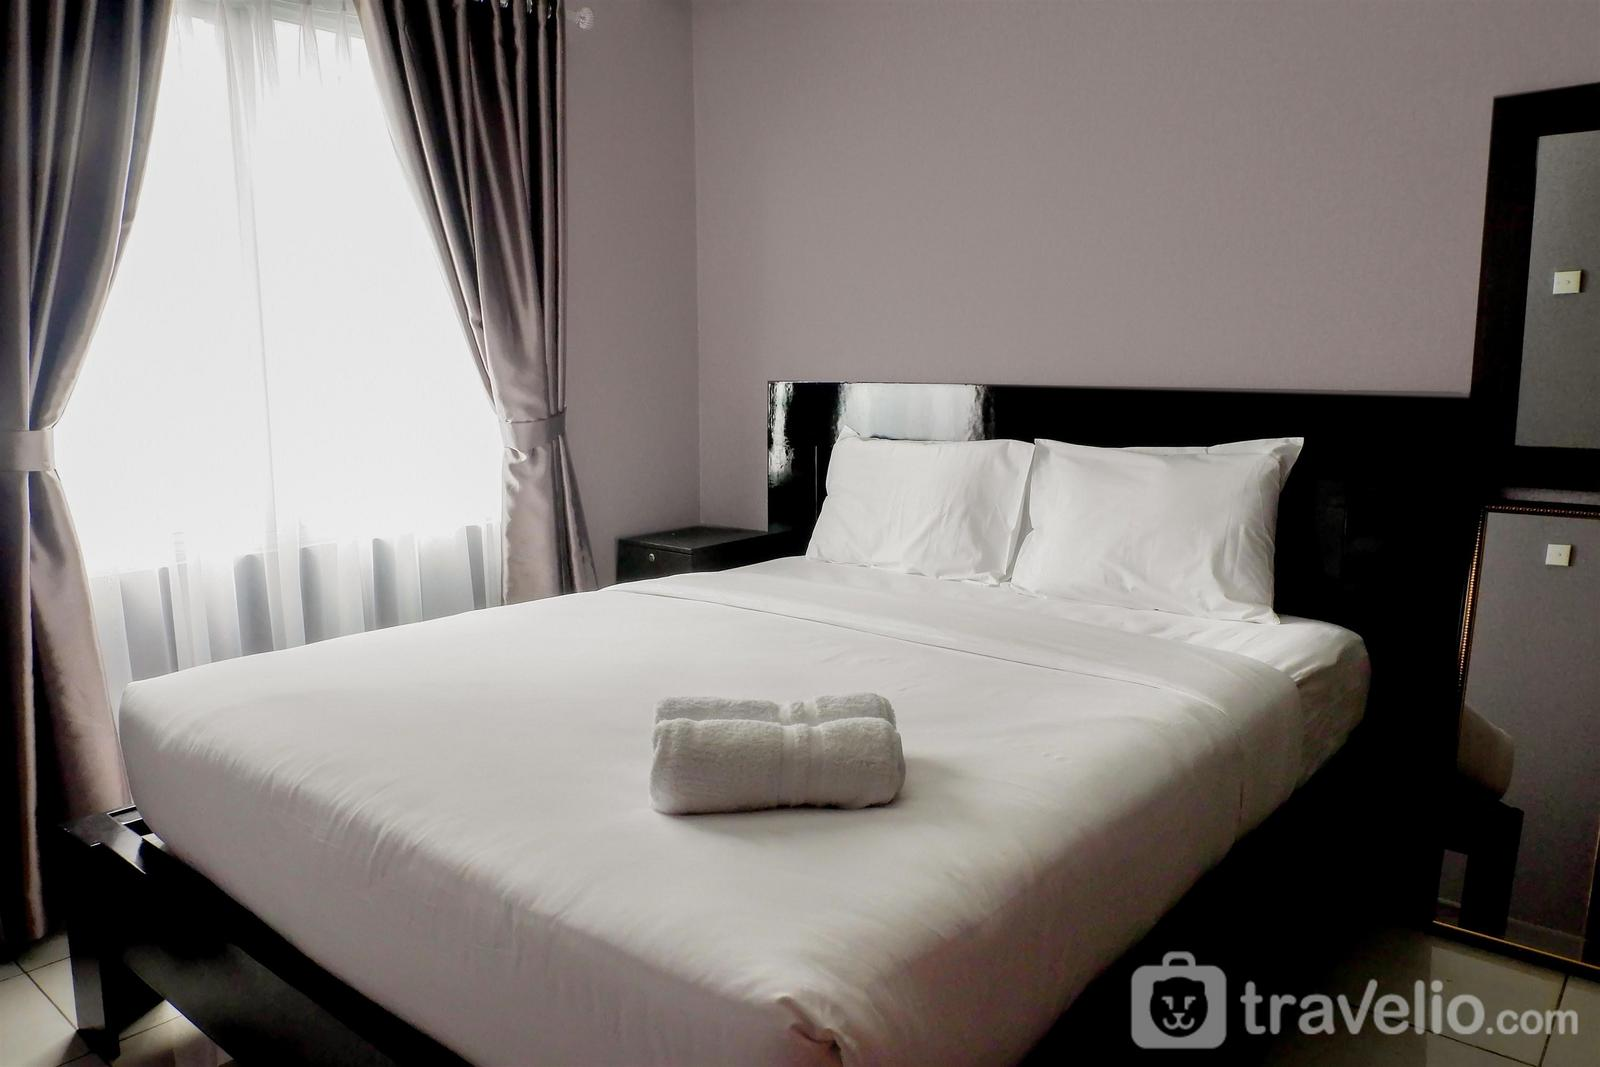 Sudirman Park Apartment - Comfy 2BR Apartment at Sudirman Park By Travelio